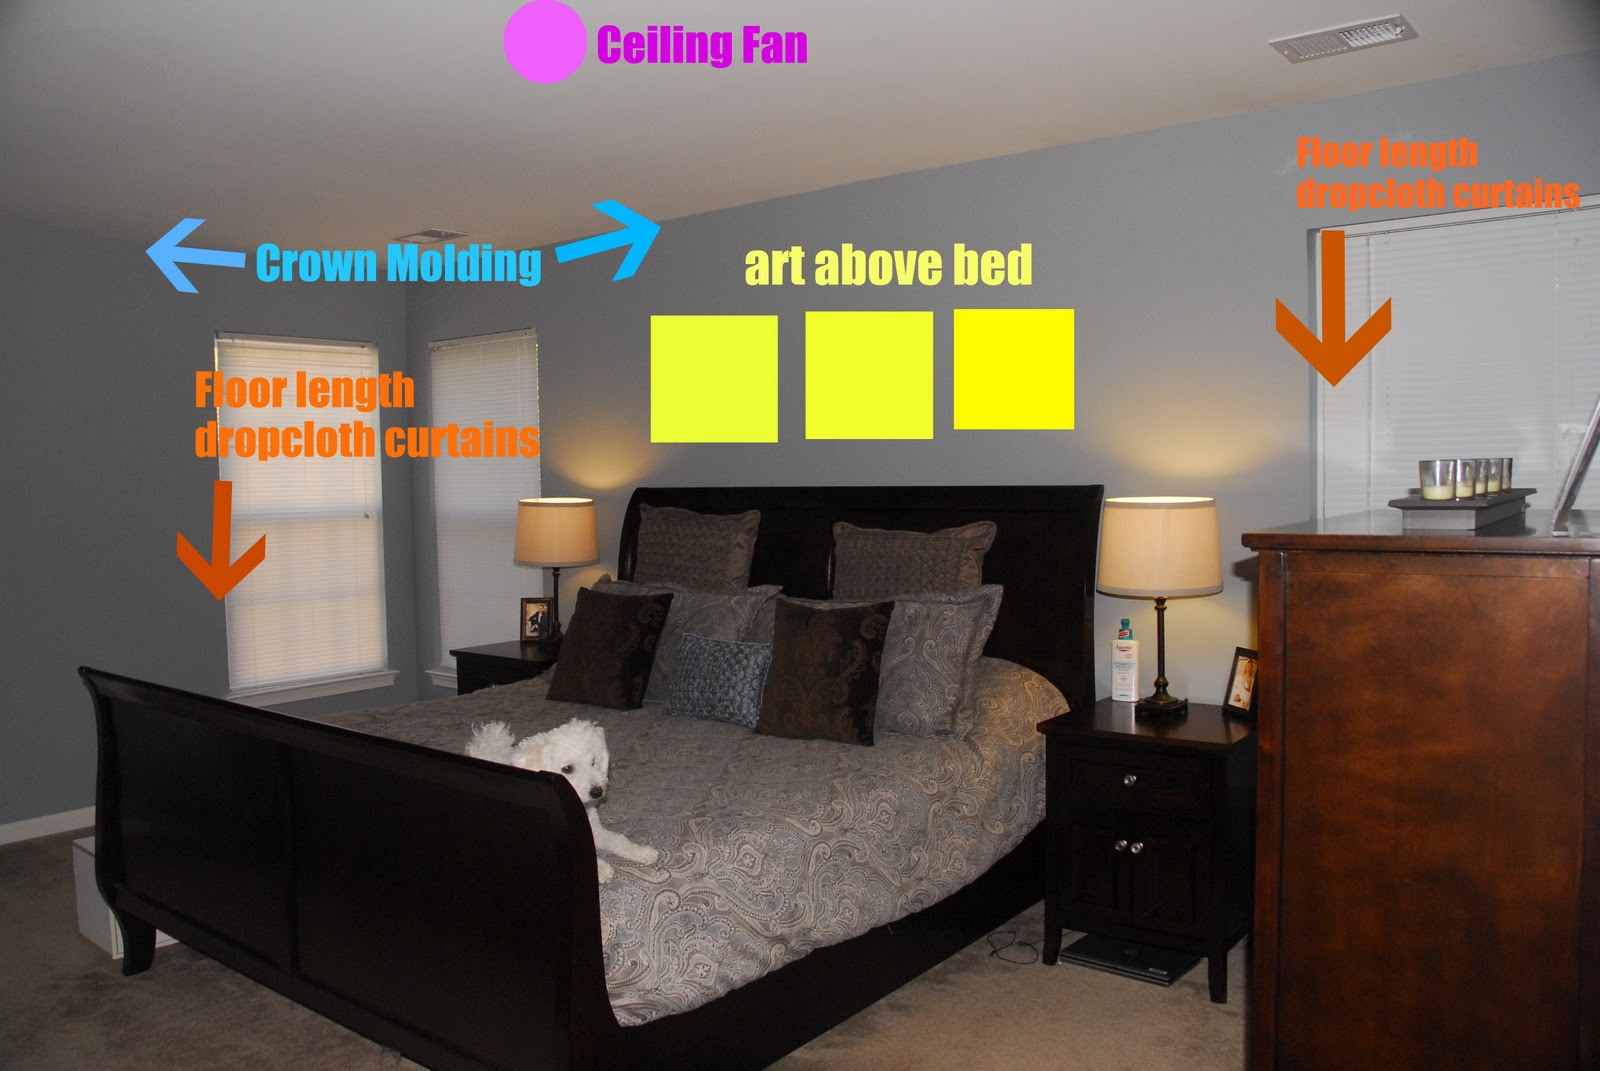 Marvelous I Already Bought Oil Rubbed Bronze Curtain Rods, And Iu0027m Going To Make Some  Dropcloth Curtains. I Need To Add Some Art Above Our Bed, Add Crown  Molding, ...